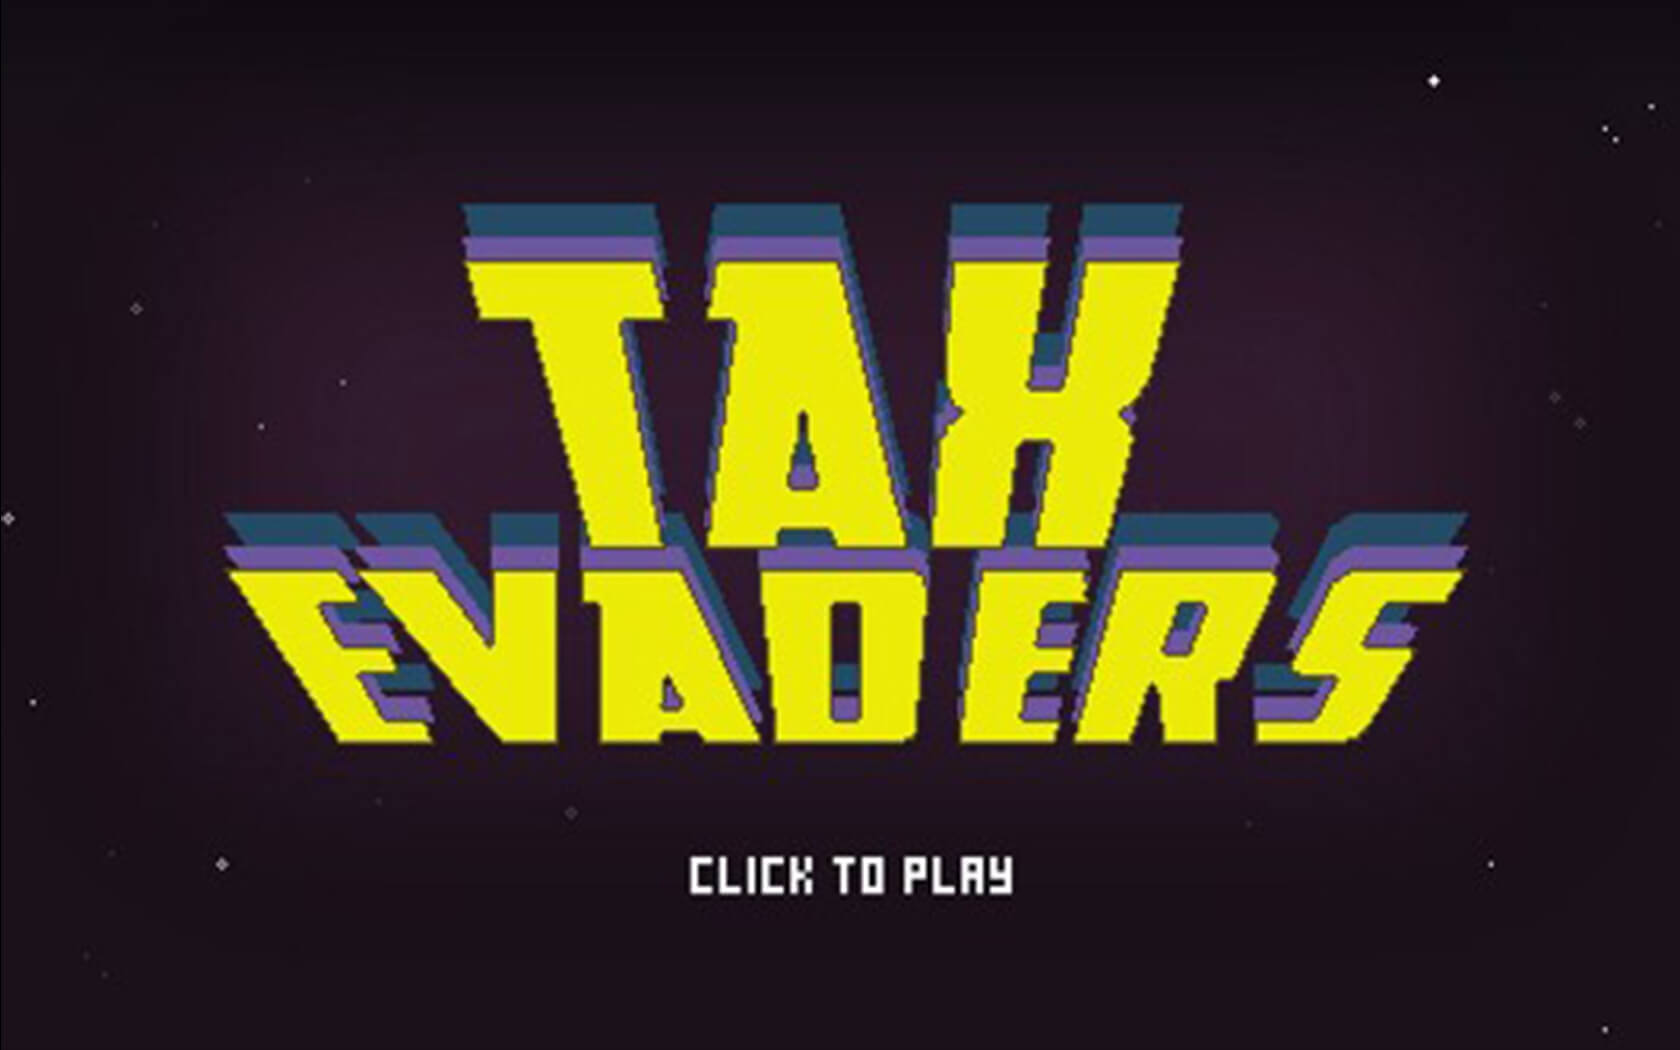 Tax Evaders Title screen - Ashton Morris